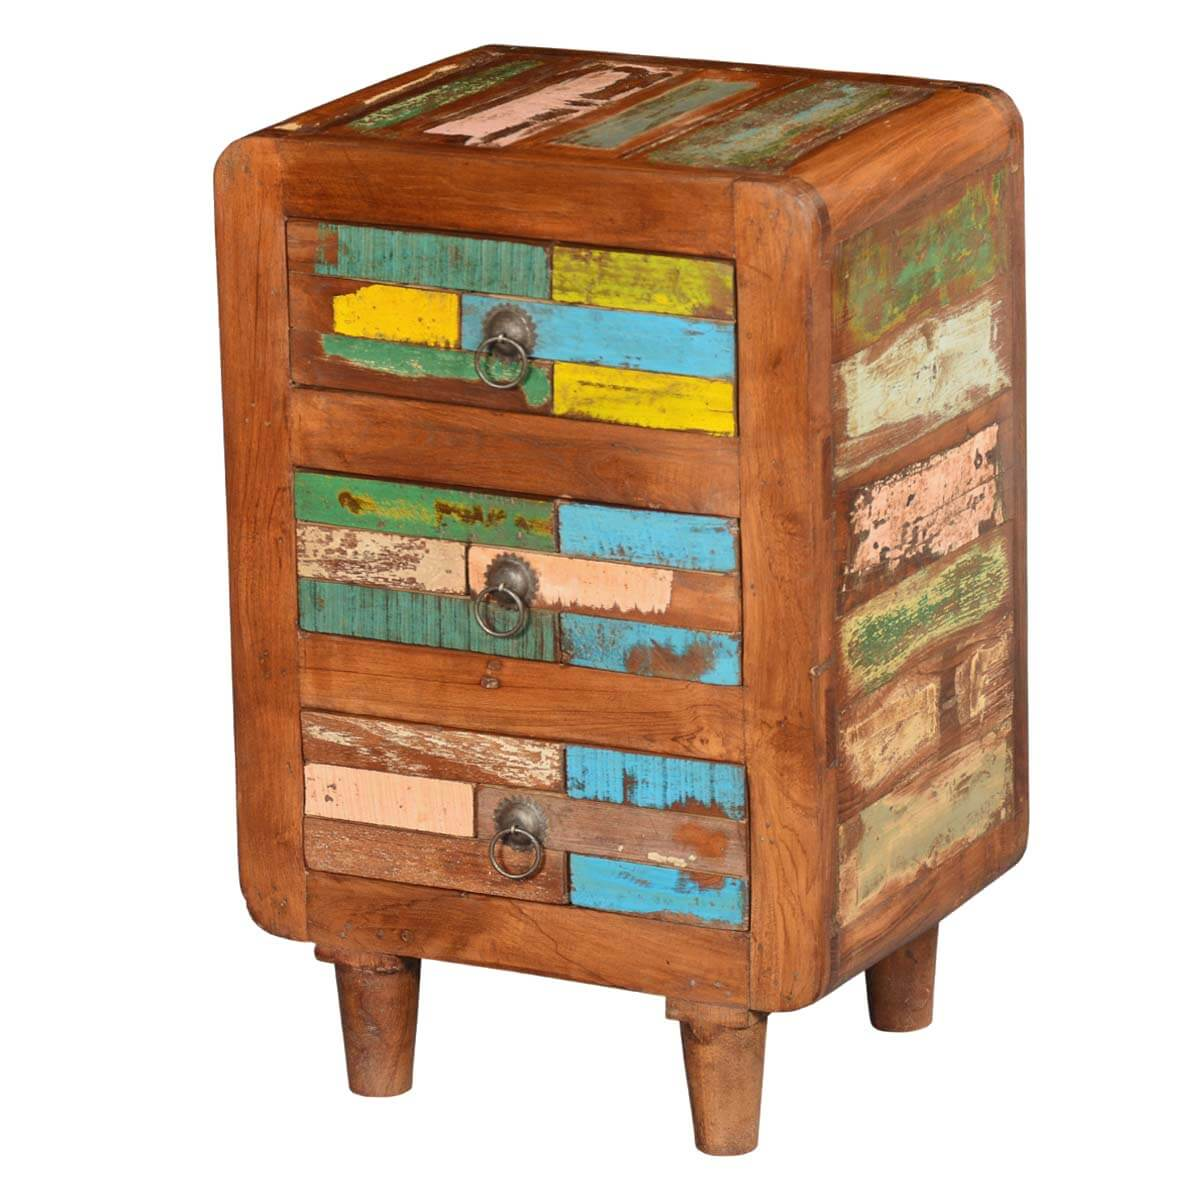 reclaimed wood multi colored bedside end table with  drawers - rustic reclaimed wood multi colored bedside end table with  drawers